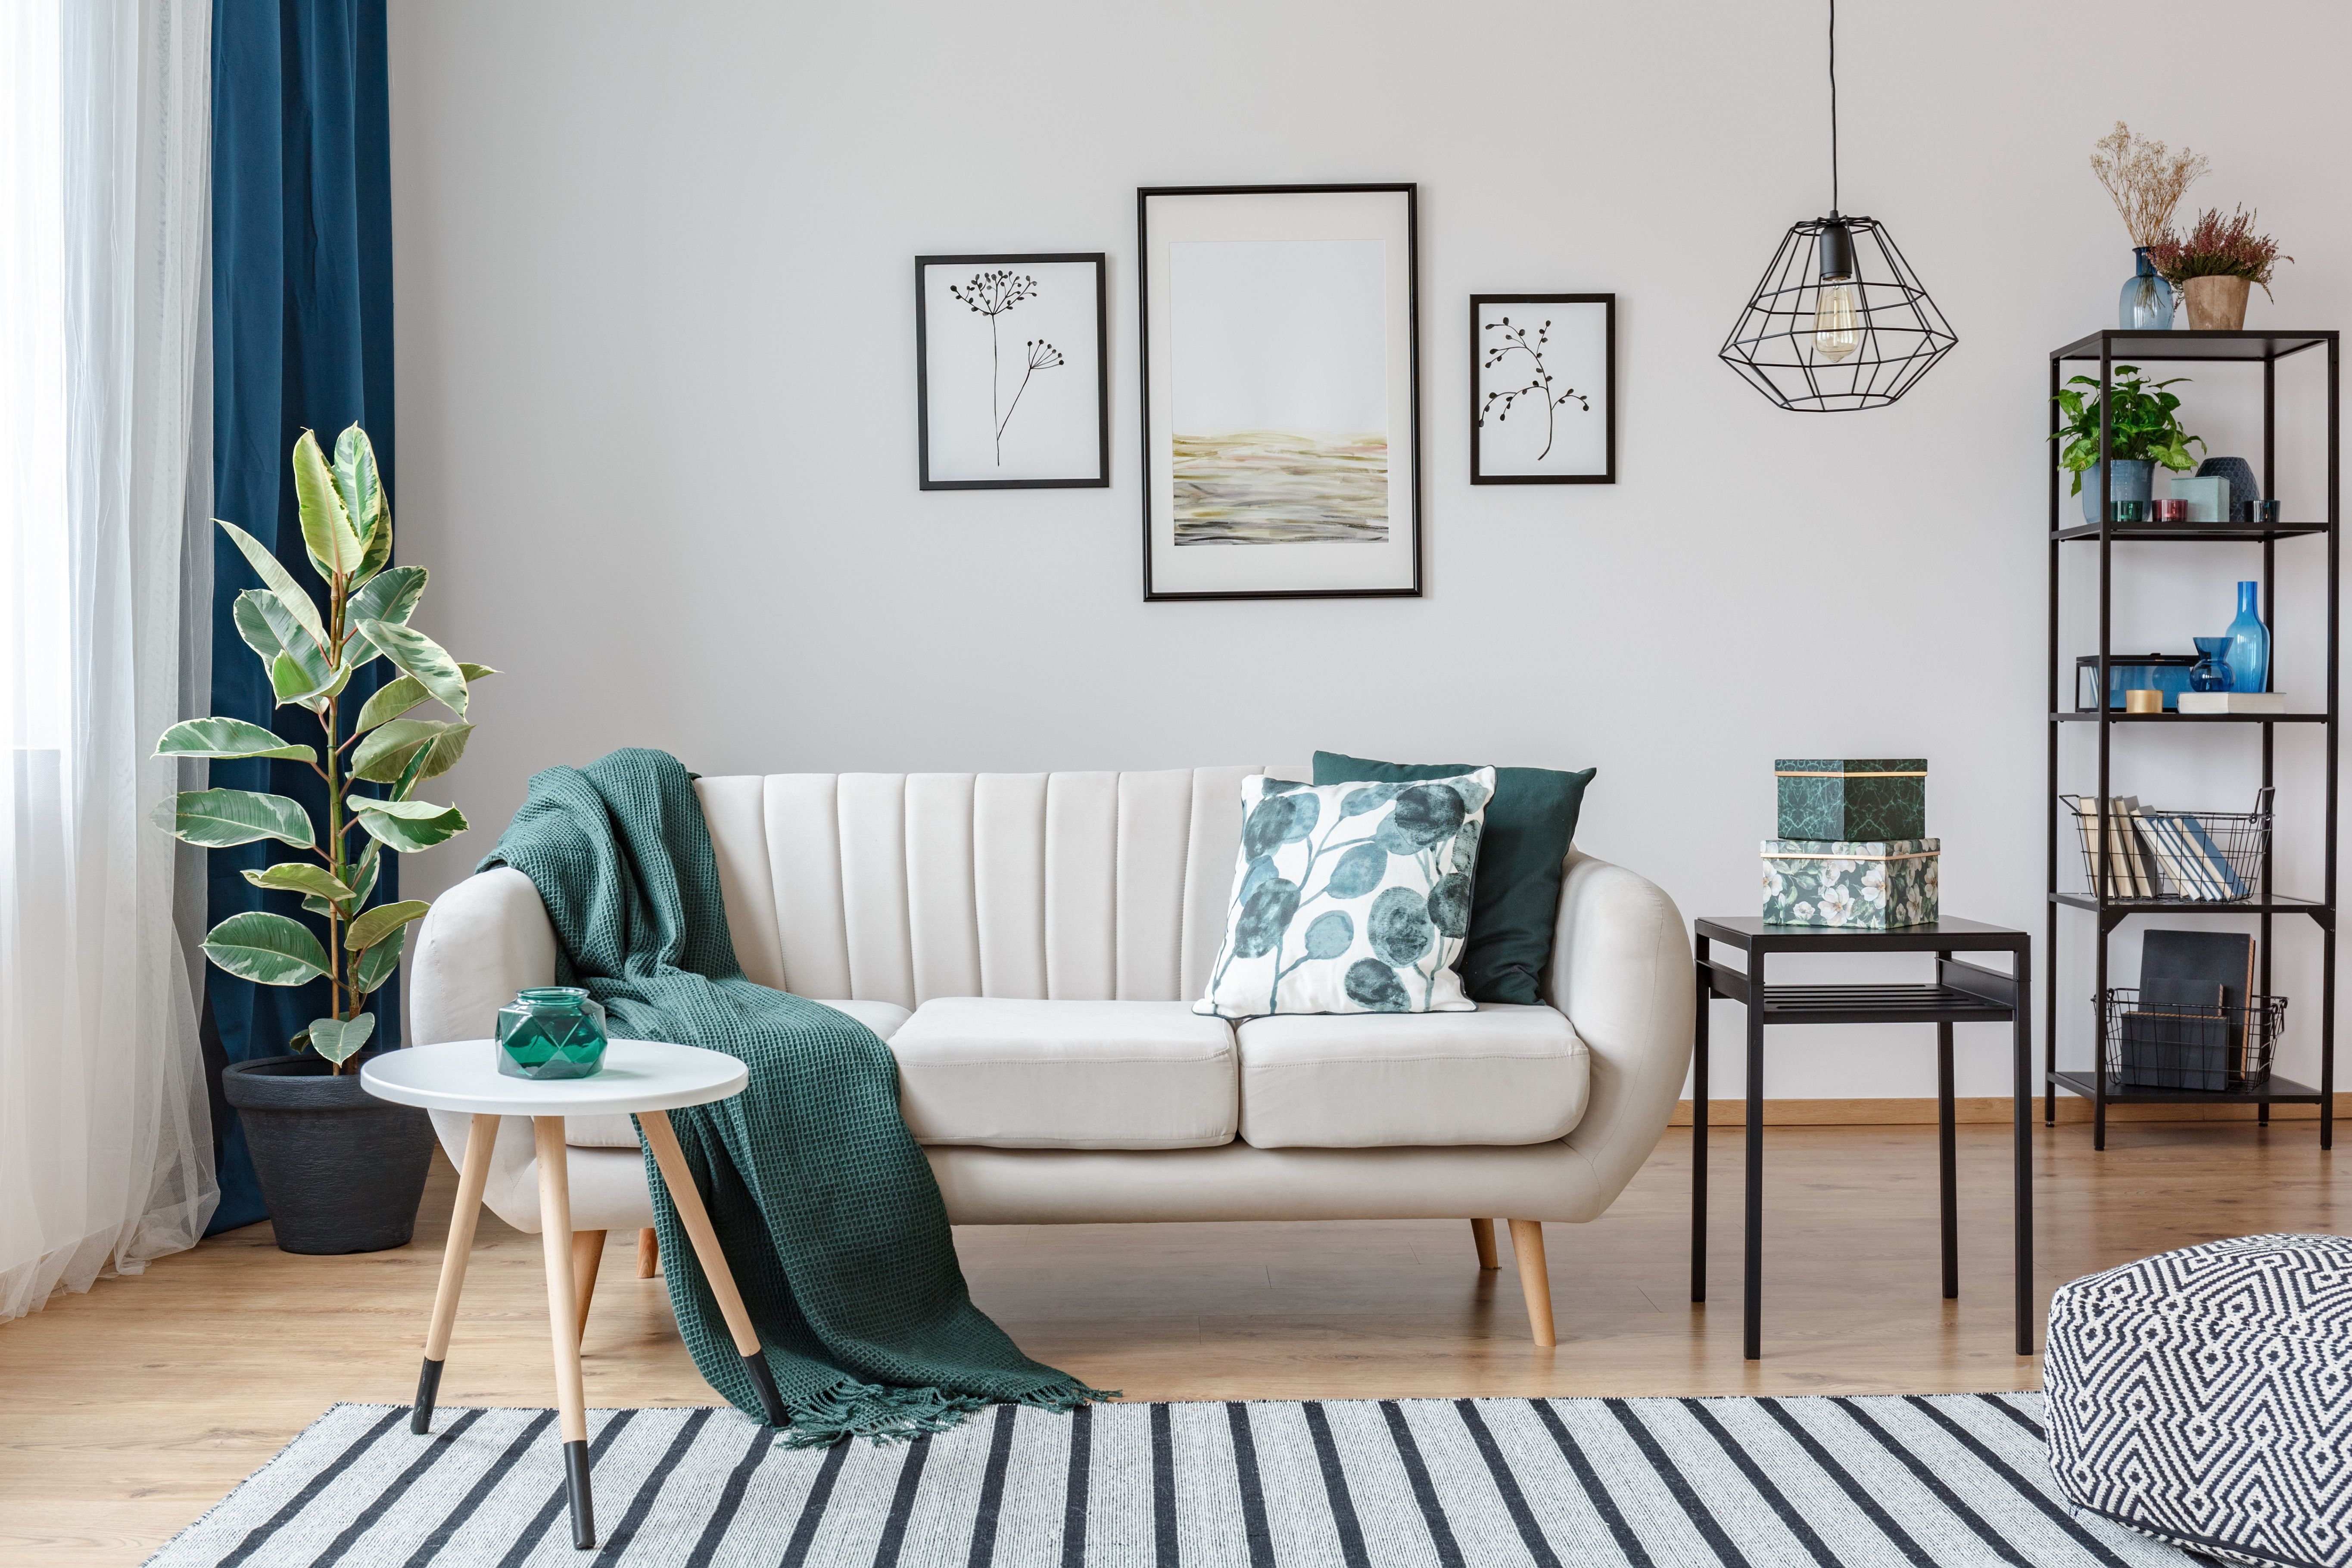 The 15 best online retailers to shop for home decor